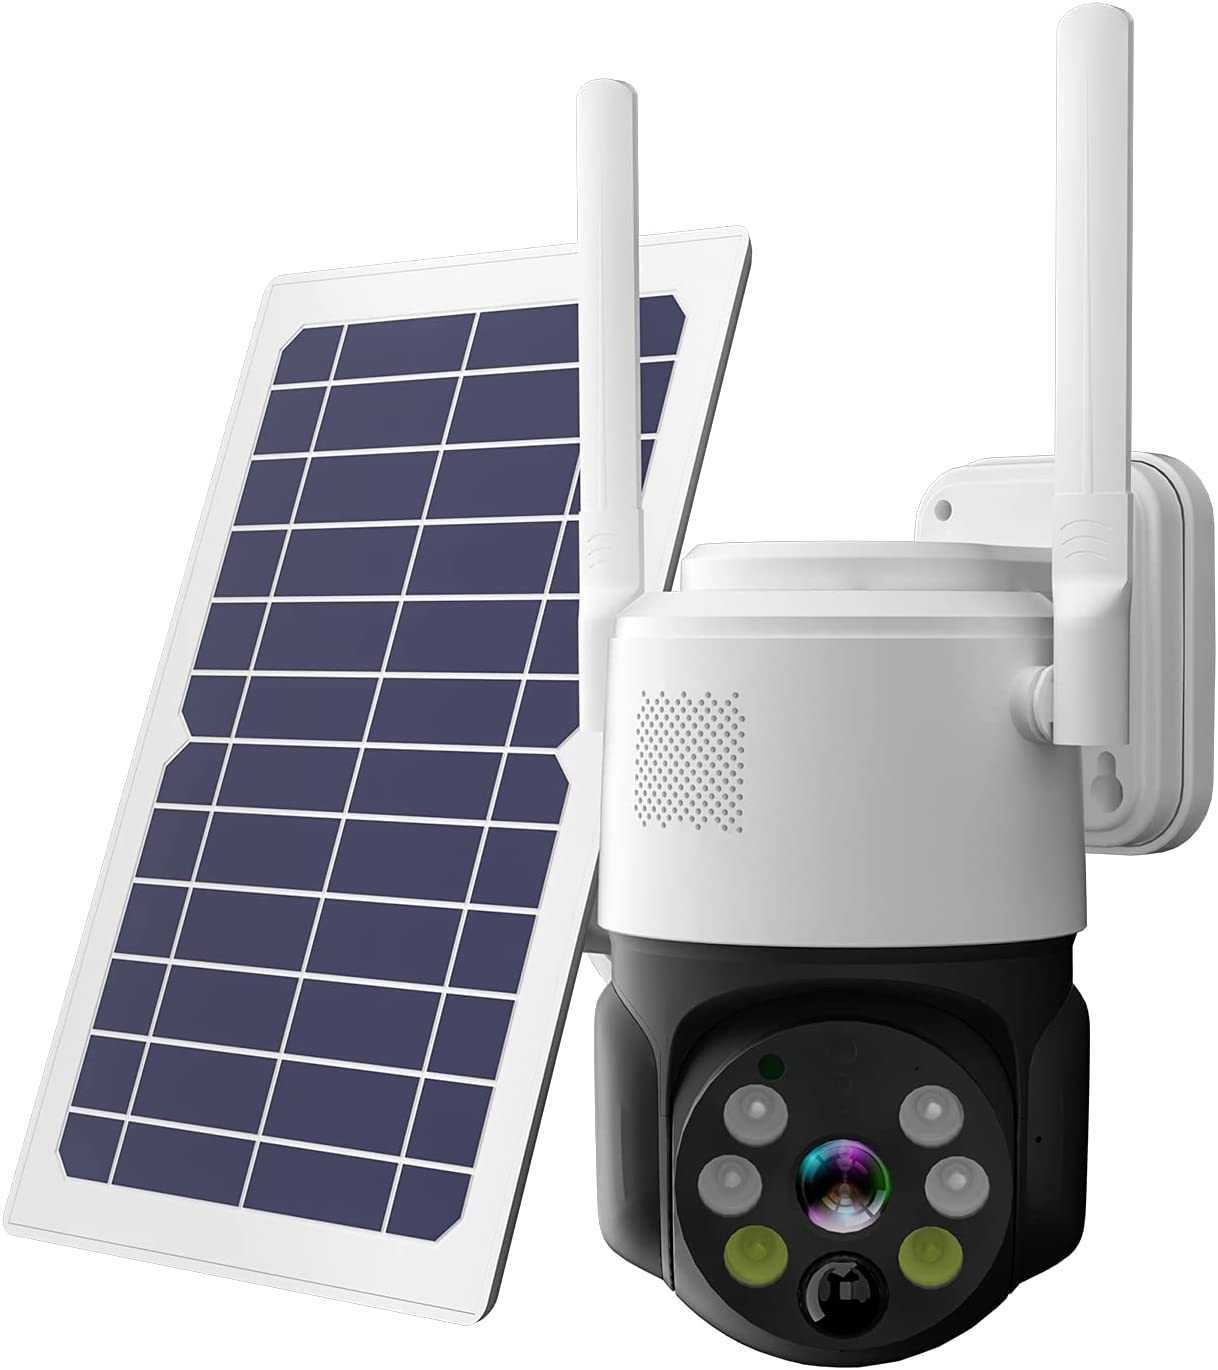 Solar Security Camera Outdoor Wireless Pan Tilt Battery Powered Auto Tracking 1080P WiFi PTZ Camera Home Surveillance PIR Motion Detection Two-Way Audio Color Night Vision SD/Cloud Storage